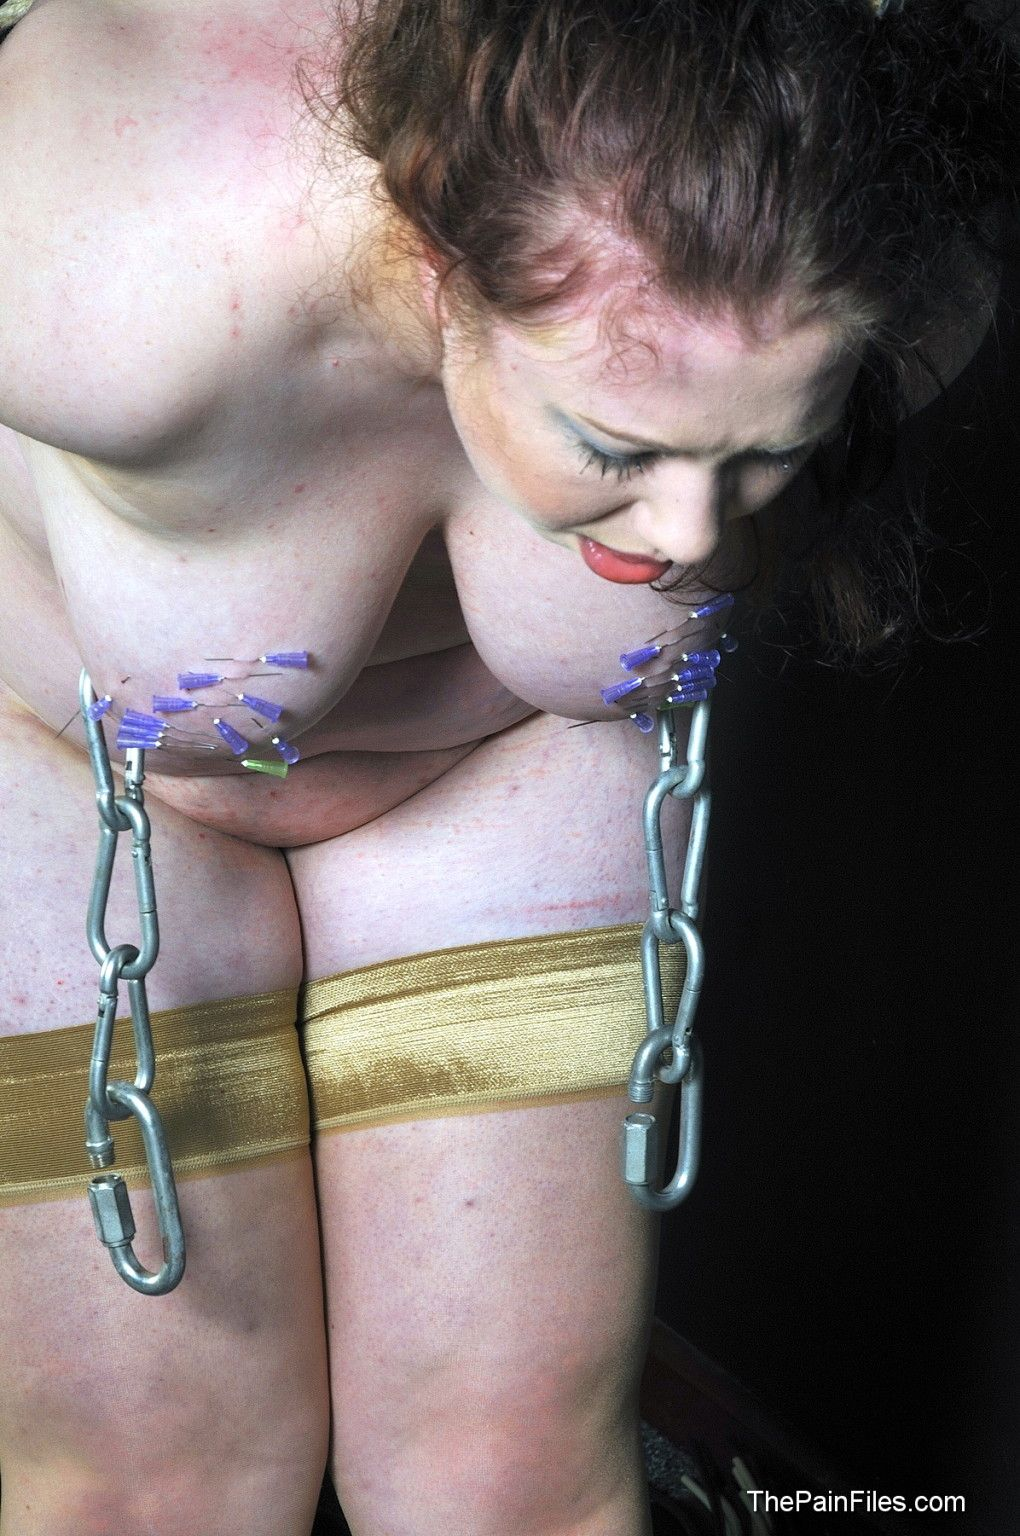 Amateur needle bdsm and extreme tit torture of bbw slavegirl rosieb in hardcore